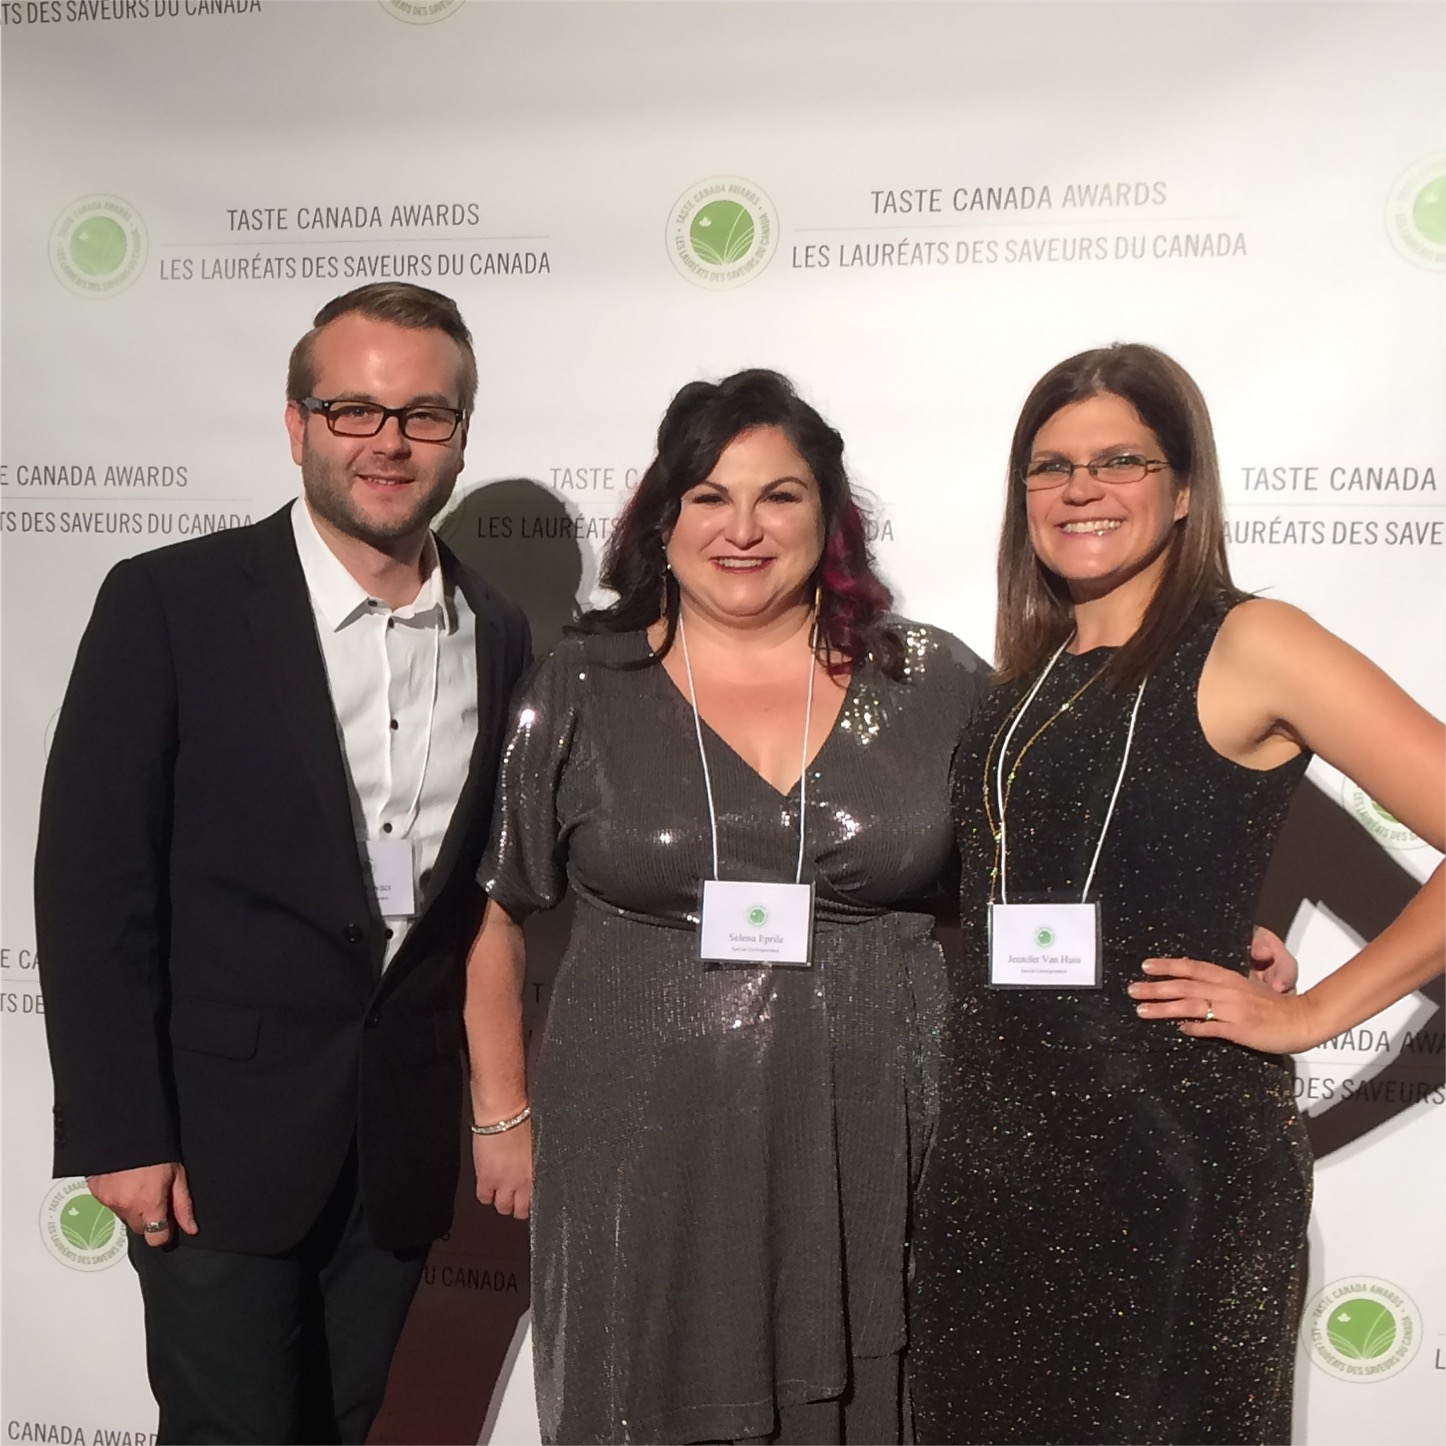 Myself and two other blogger I know! @thedipdiva and @1heart1family